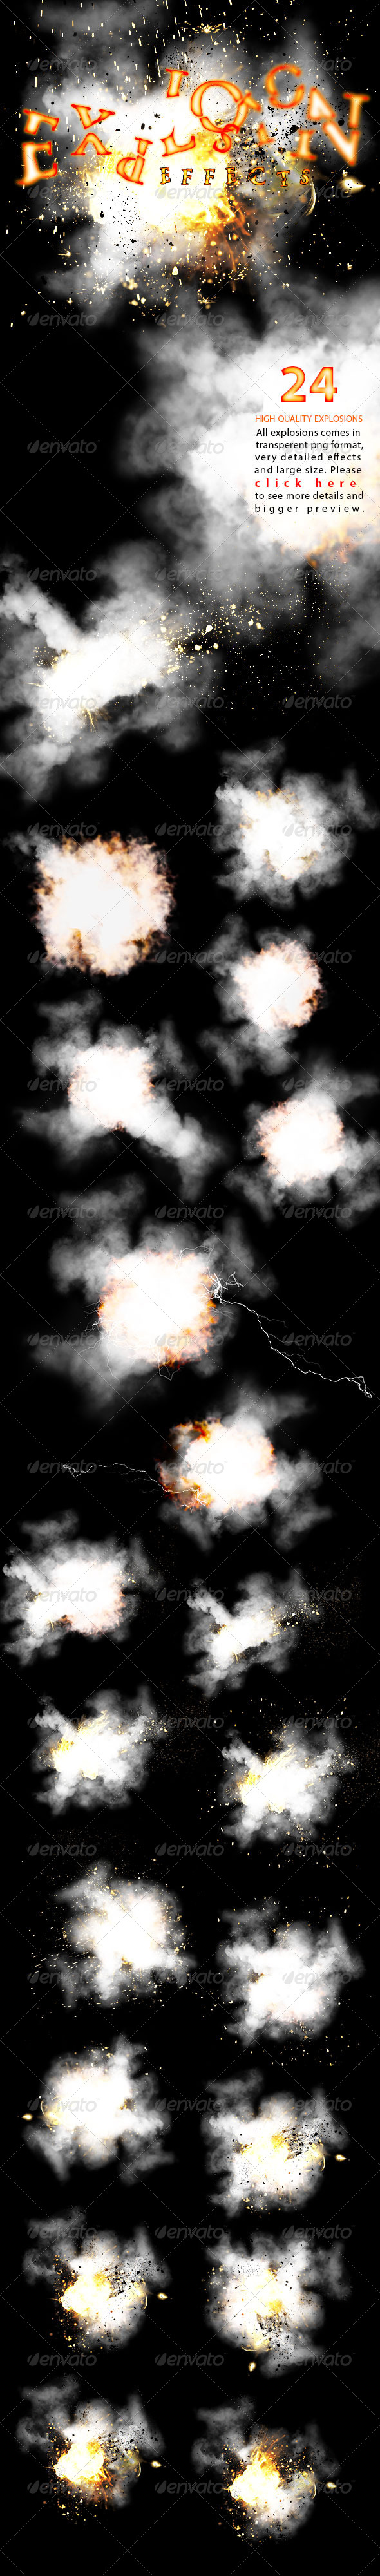 Explosion Effects - Decorative Graphics